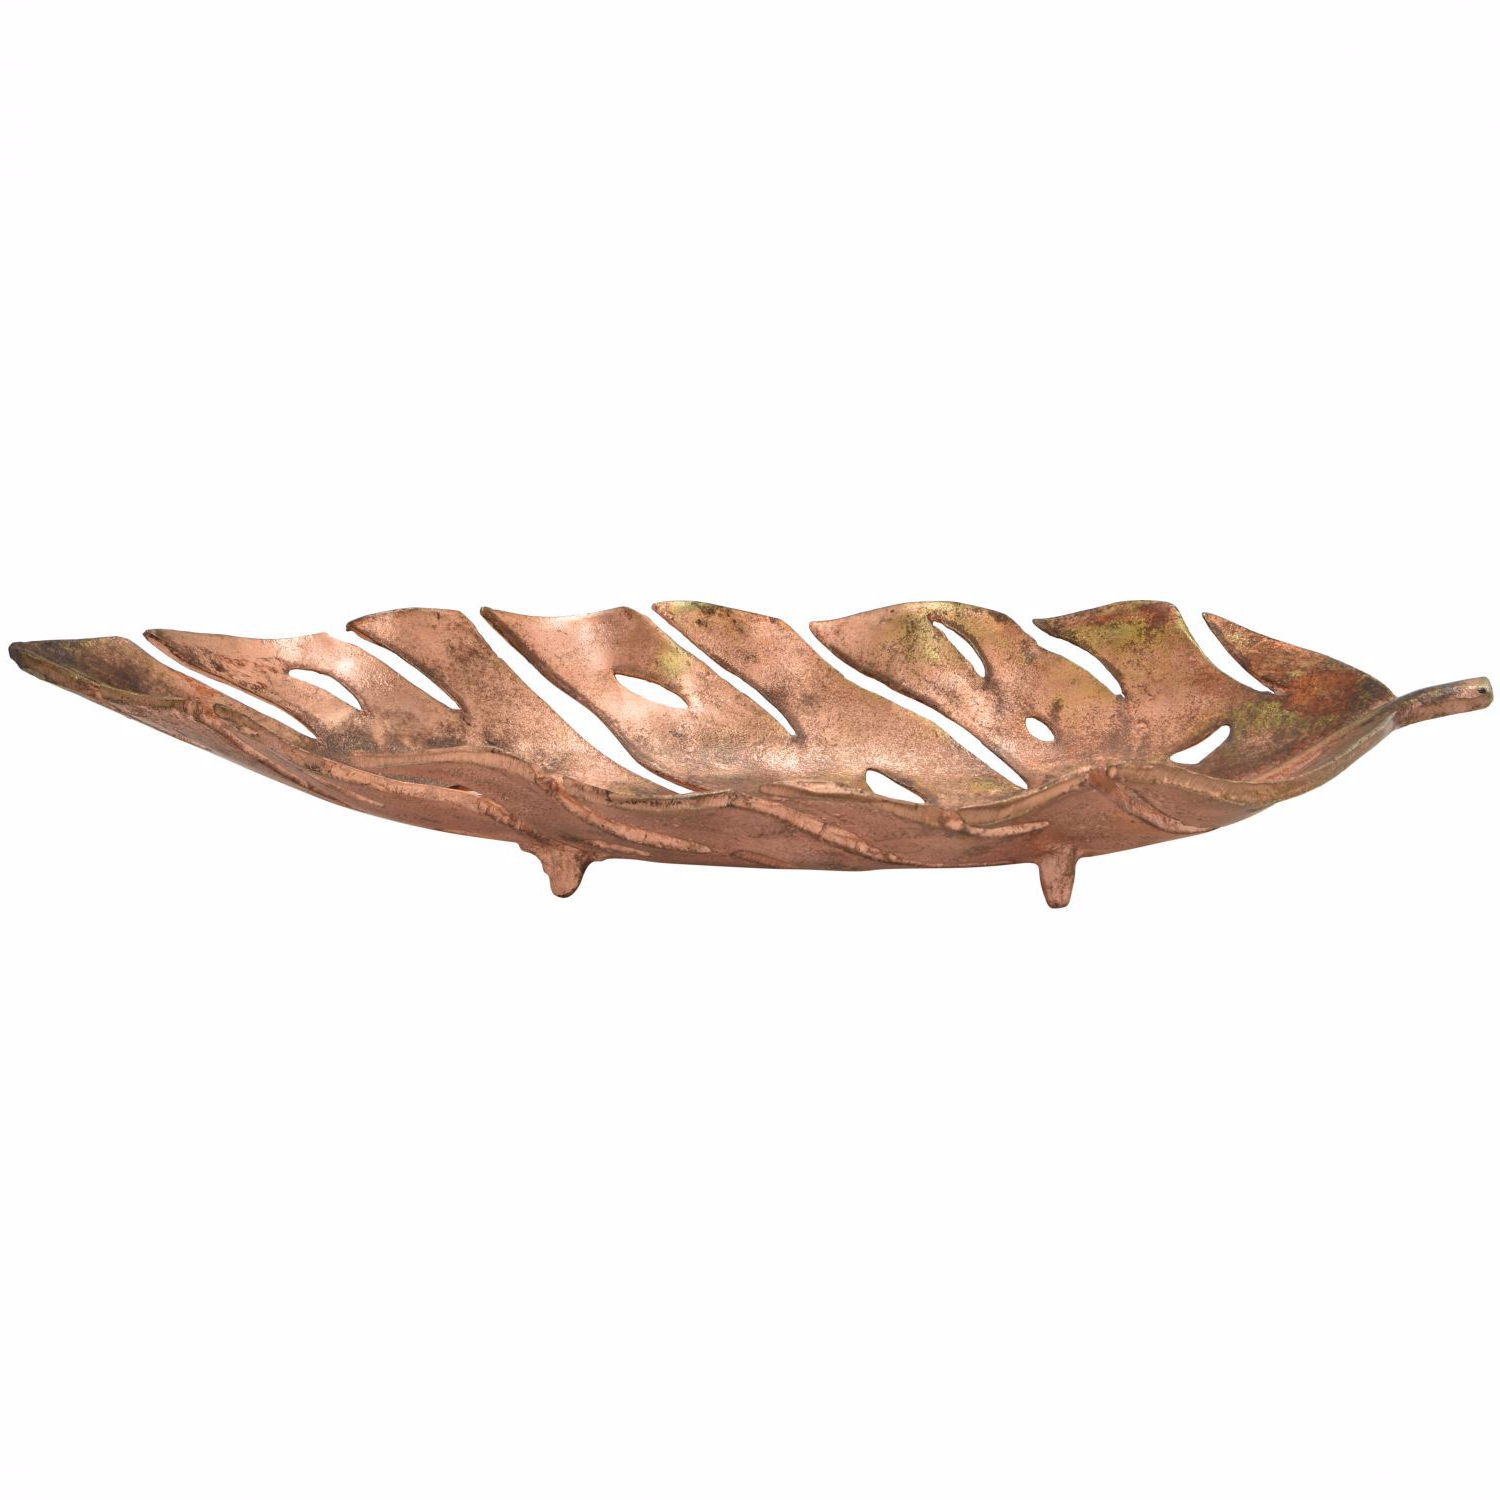 Copper Leaf Bowl Throughout Copper Leaf Wood Credenzas (View 6 of 20)